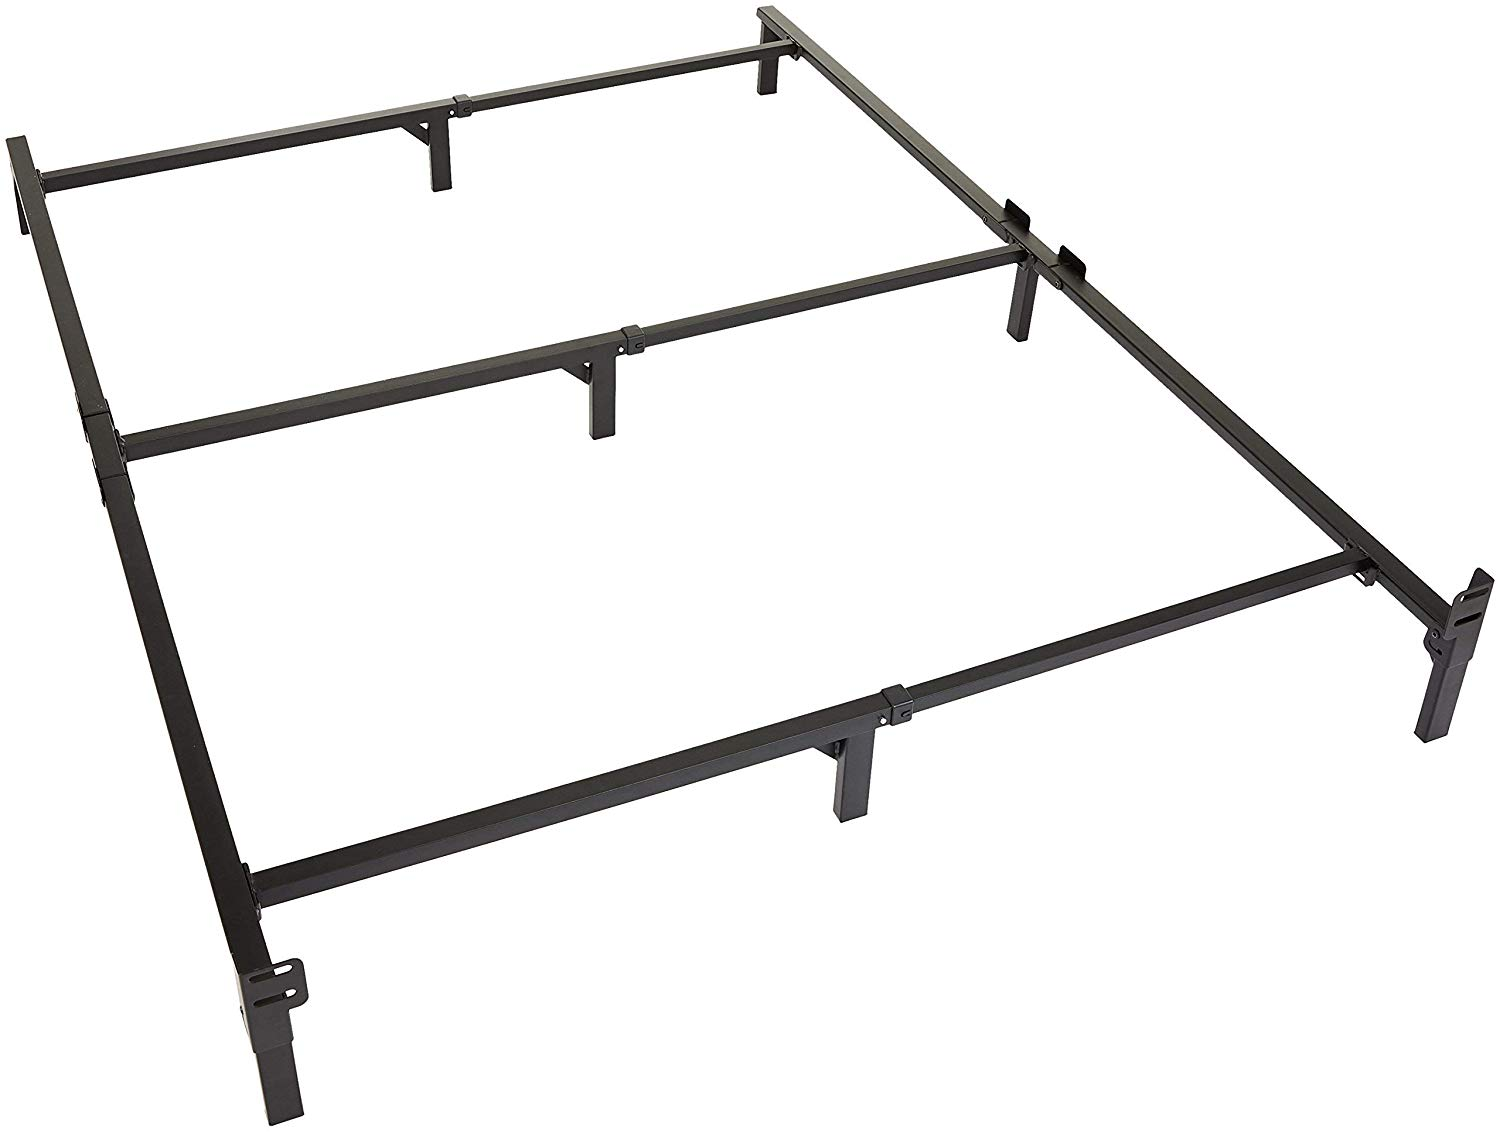 Amazon Basics 9 Legs Support Bed Frame for Box Spring and Mattress ...